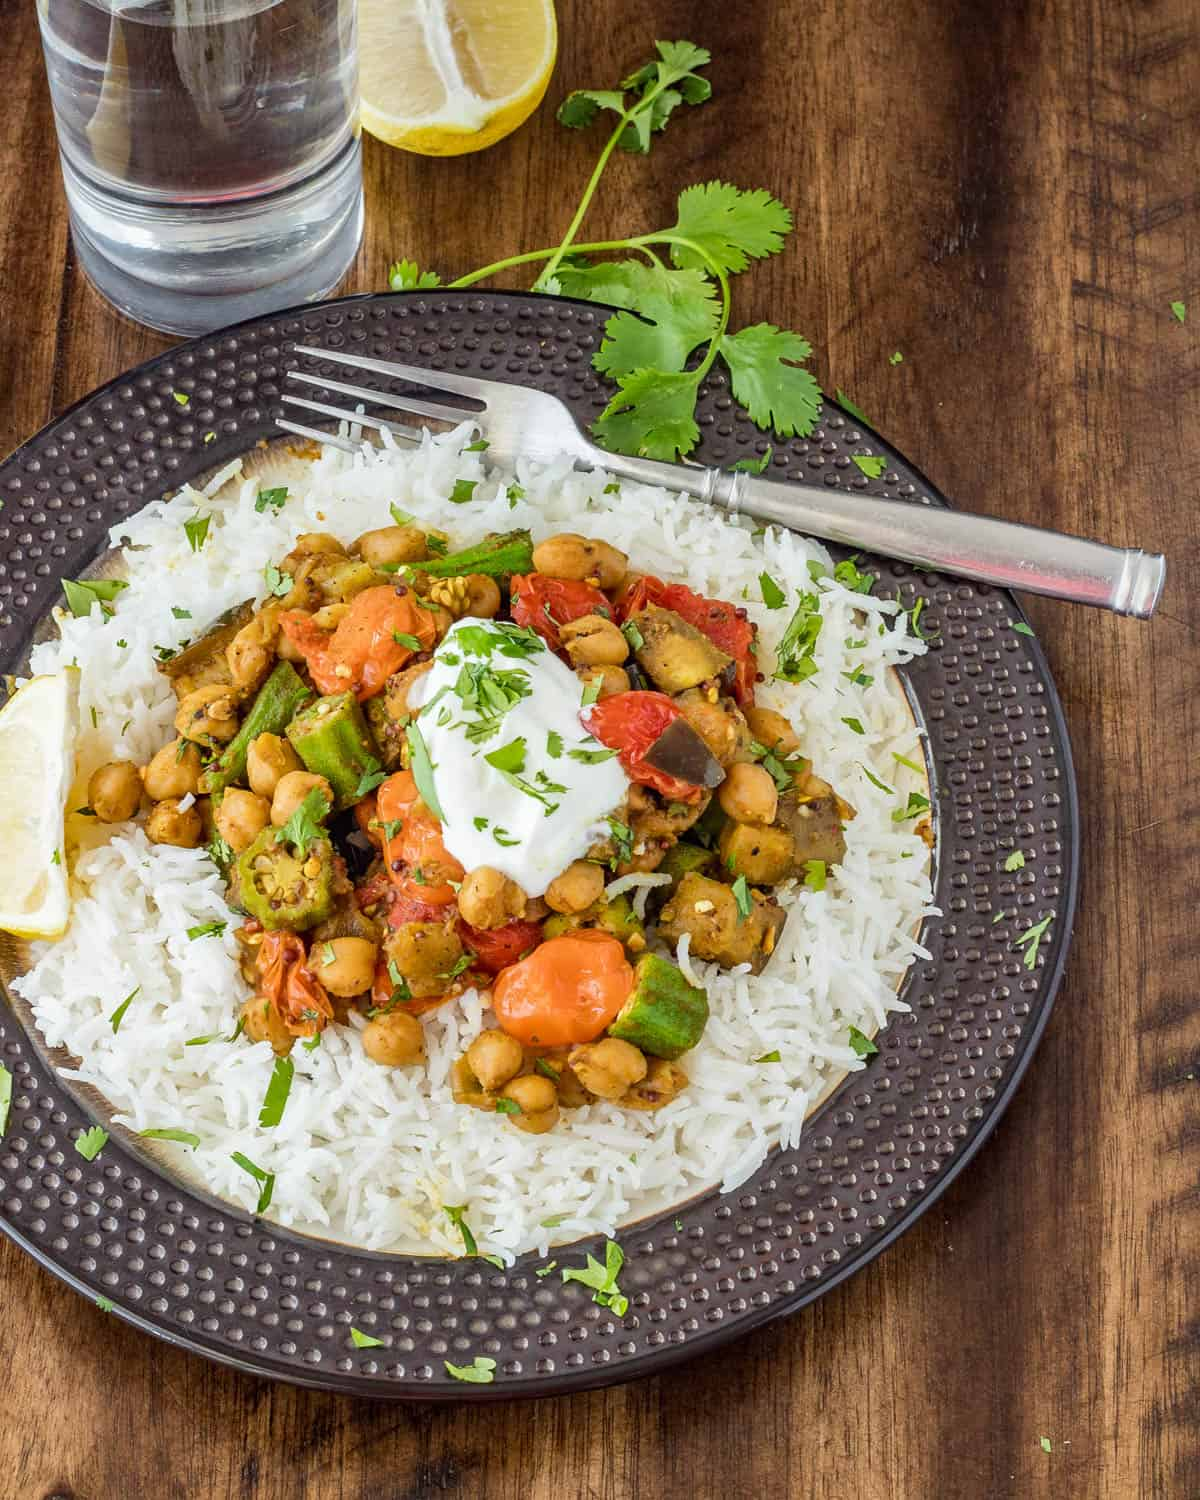 Curried Okra and Eggplant Plated over white rice with a dollop of plain yogurt and garnished with cilantro and lemon wedges.